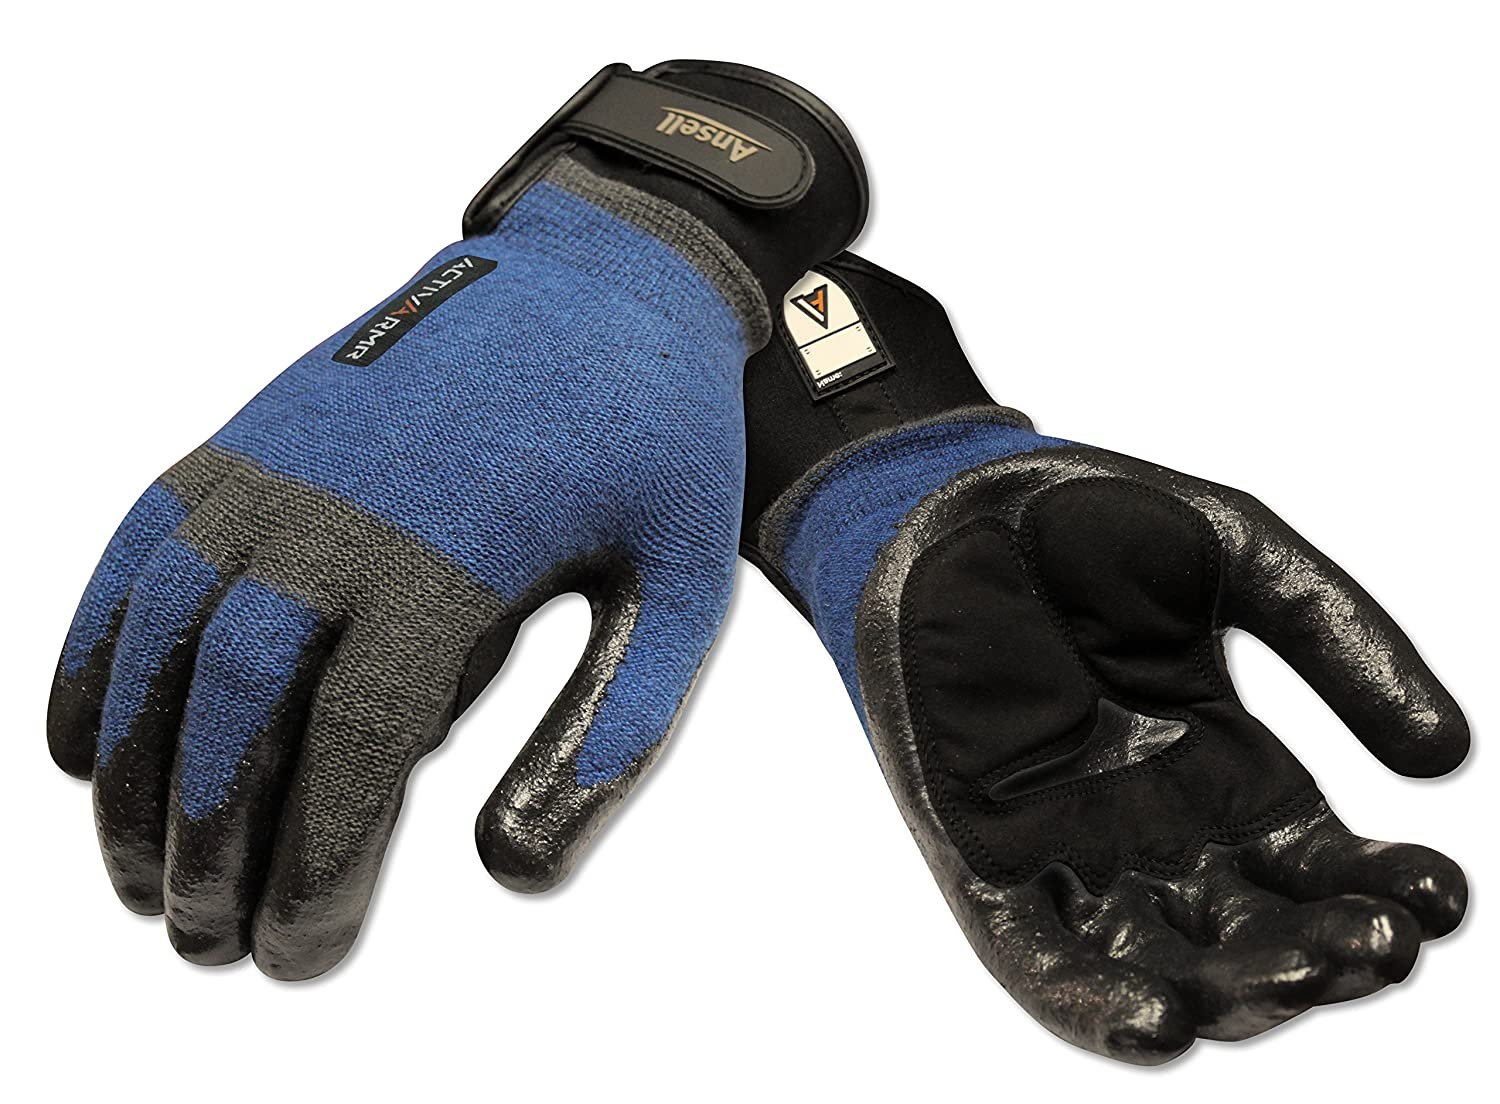 Ansell ActivArmr 97-003 Cut Protection Gloves - Heavy-Duty, Wet and Dry Grip, Breathable, Size Medium (1 pair)